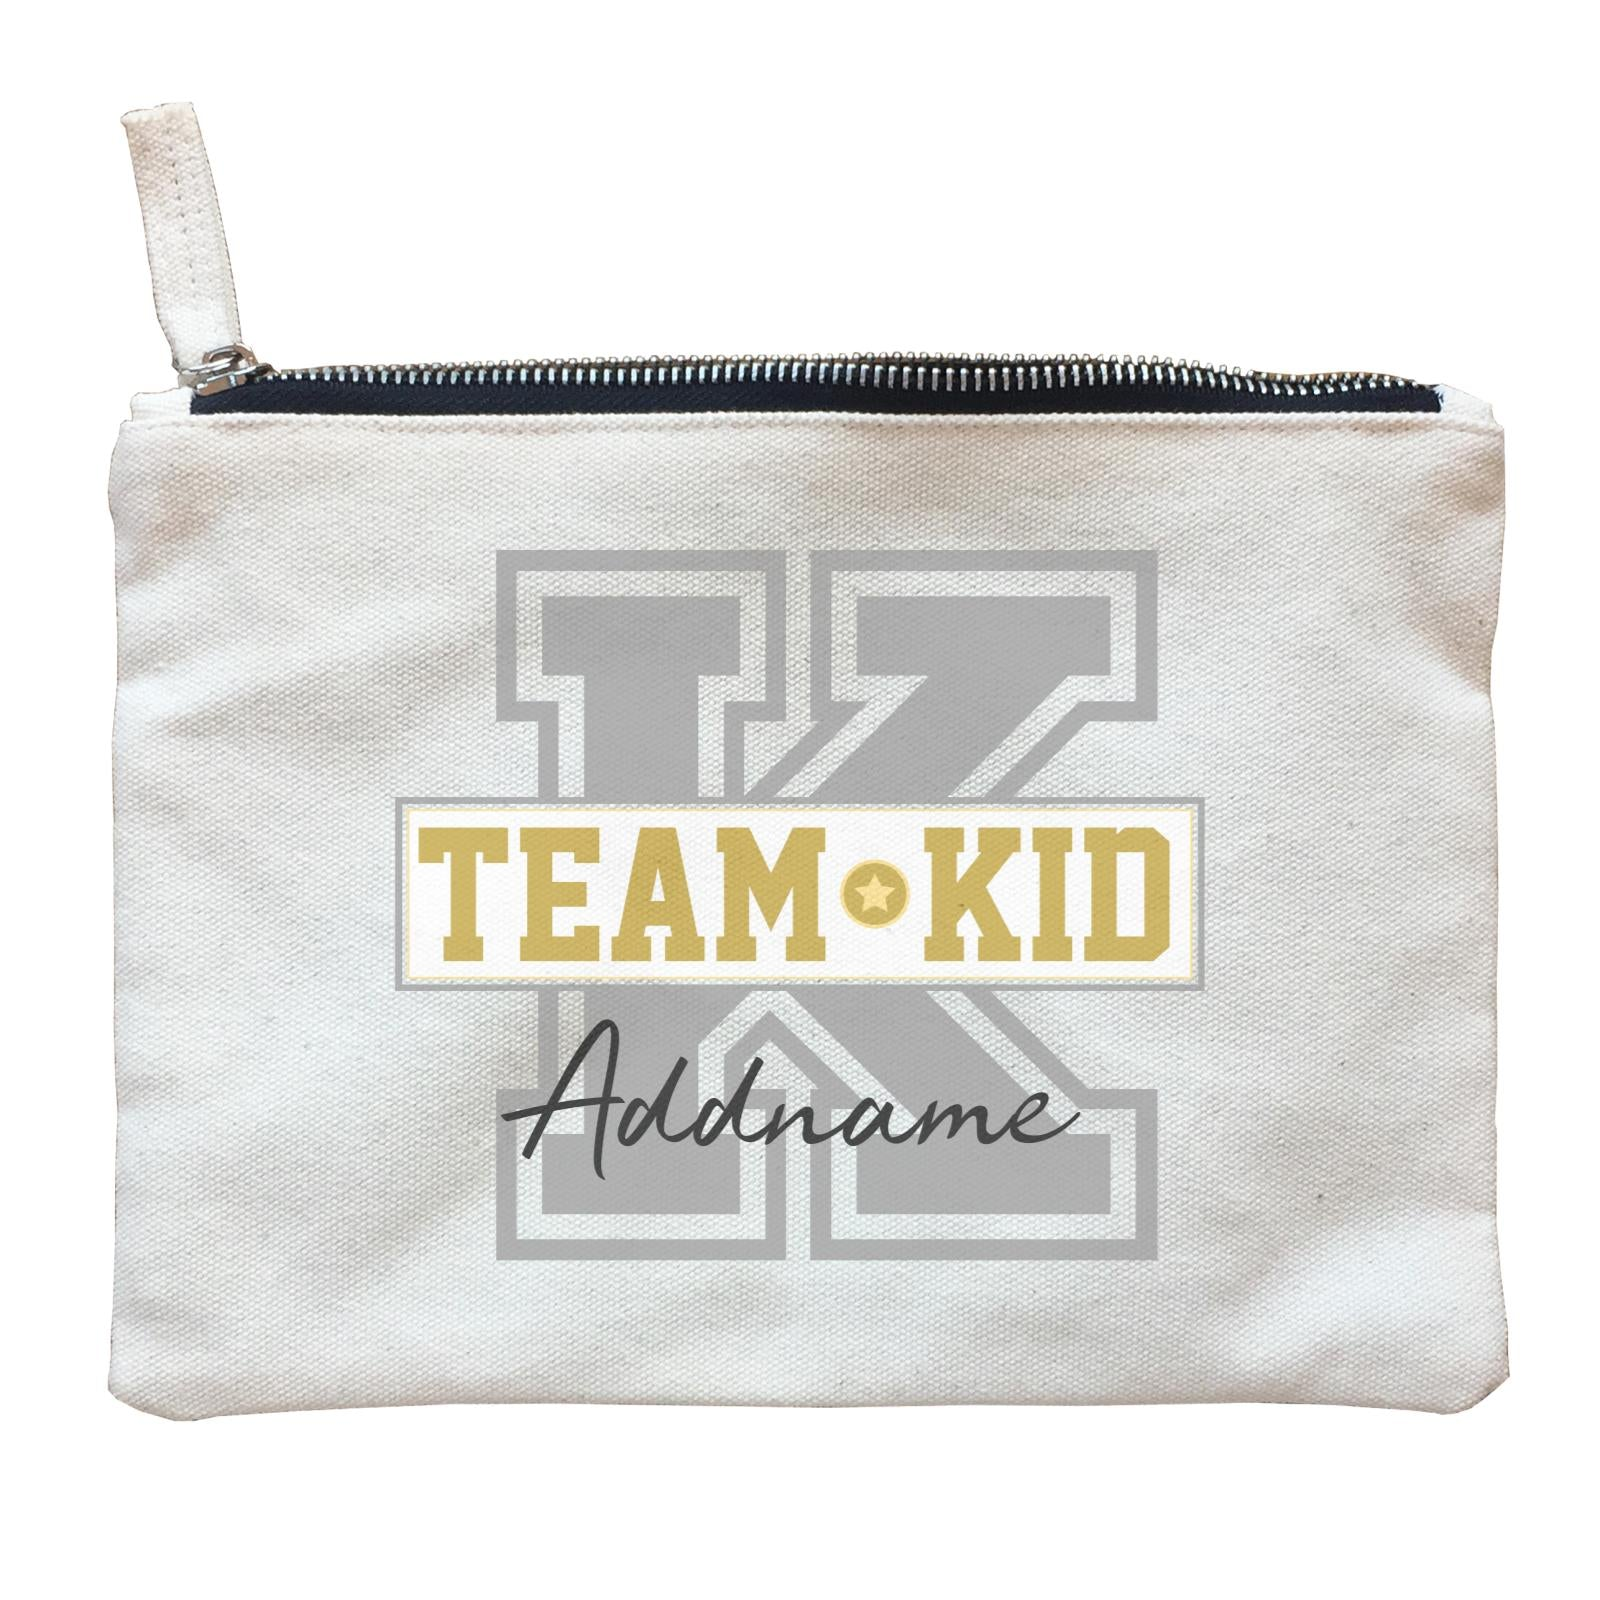 Team Kid Addname Zipper Pouch